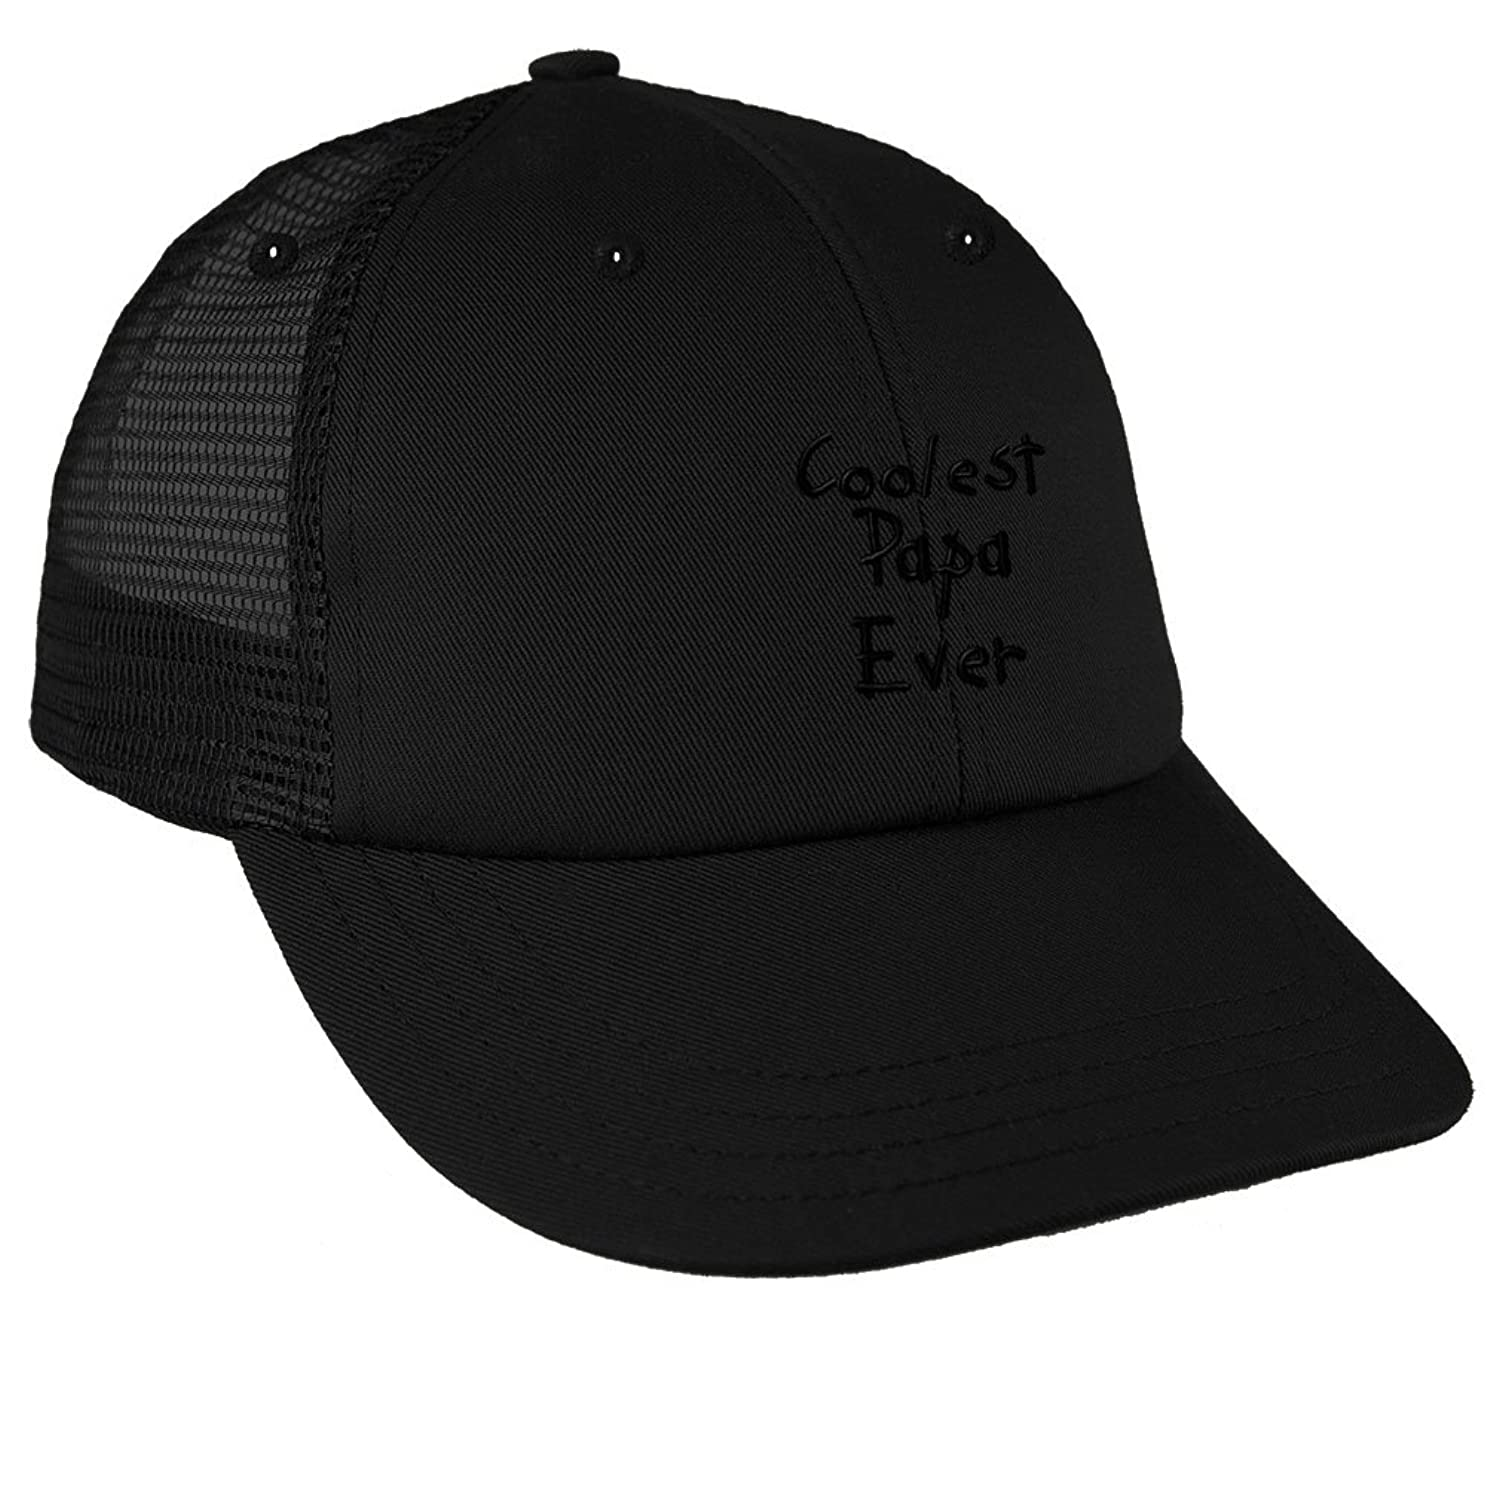 Amazon.com  Coolest Papa Ever Black Embroidery Low Crown Mesh Golf Snapback  Hat Black  Clothing 3bcfdee5809